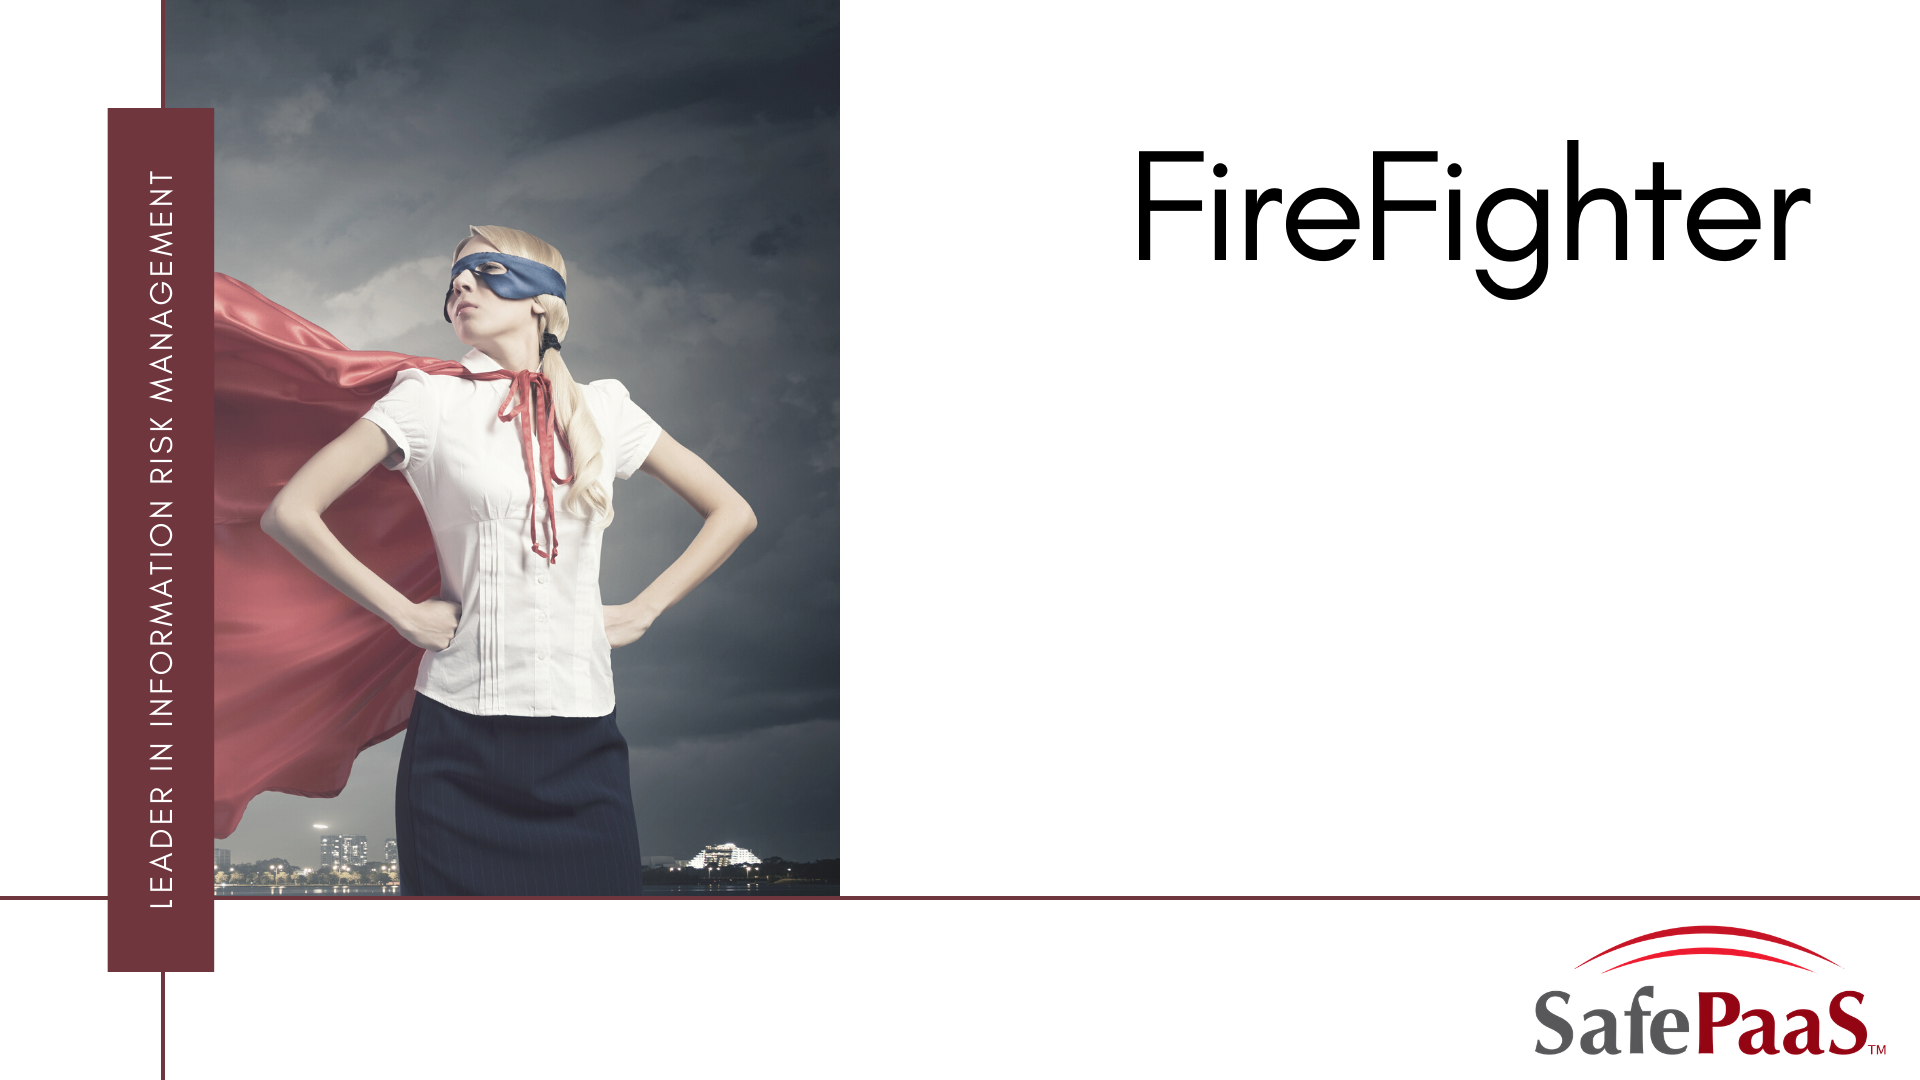 FireFighter infographic